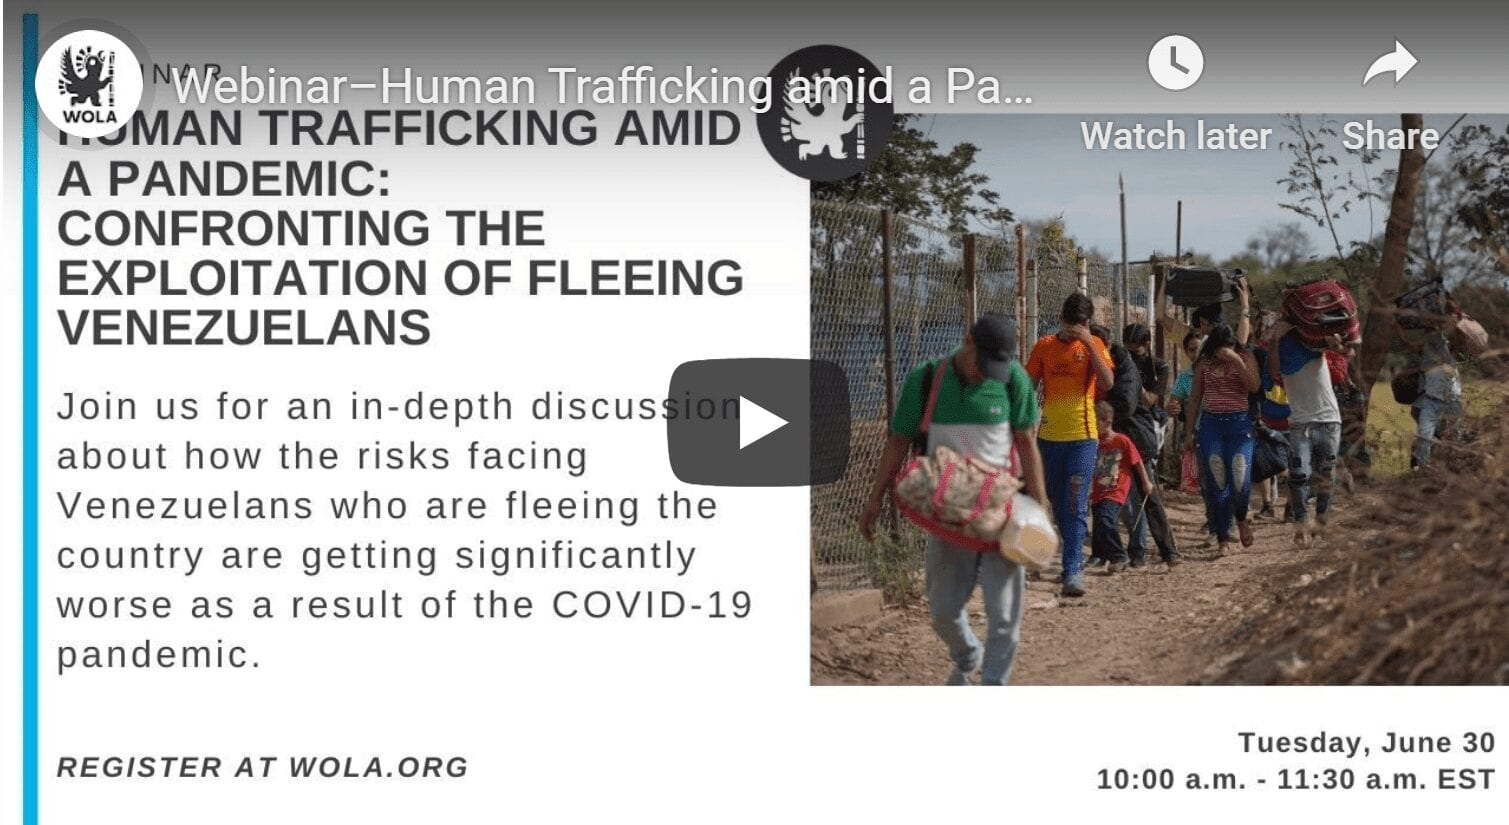 Human Trafficking amid a Pandemic: Confronting the Exploitation of Fleeing Venezuelans